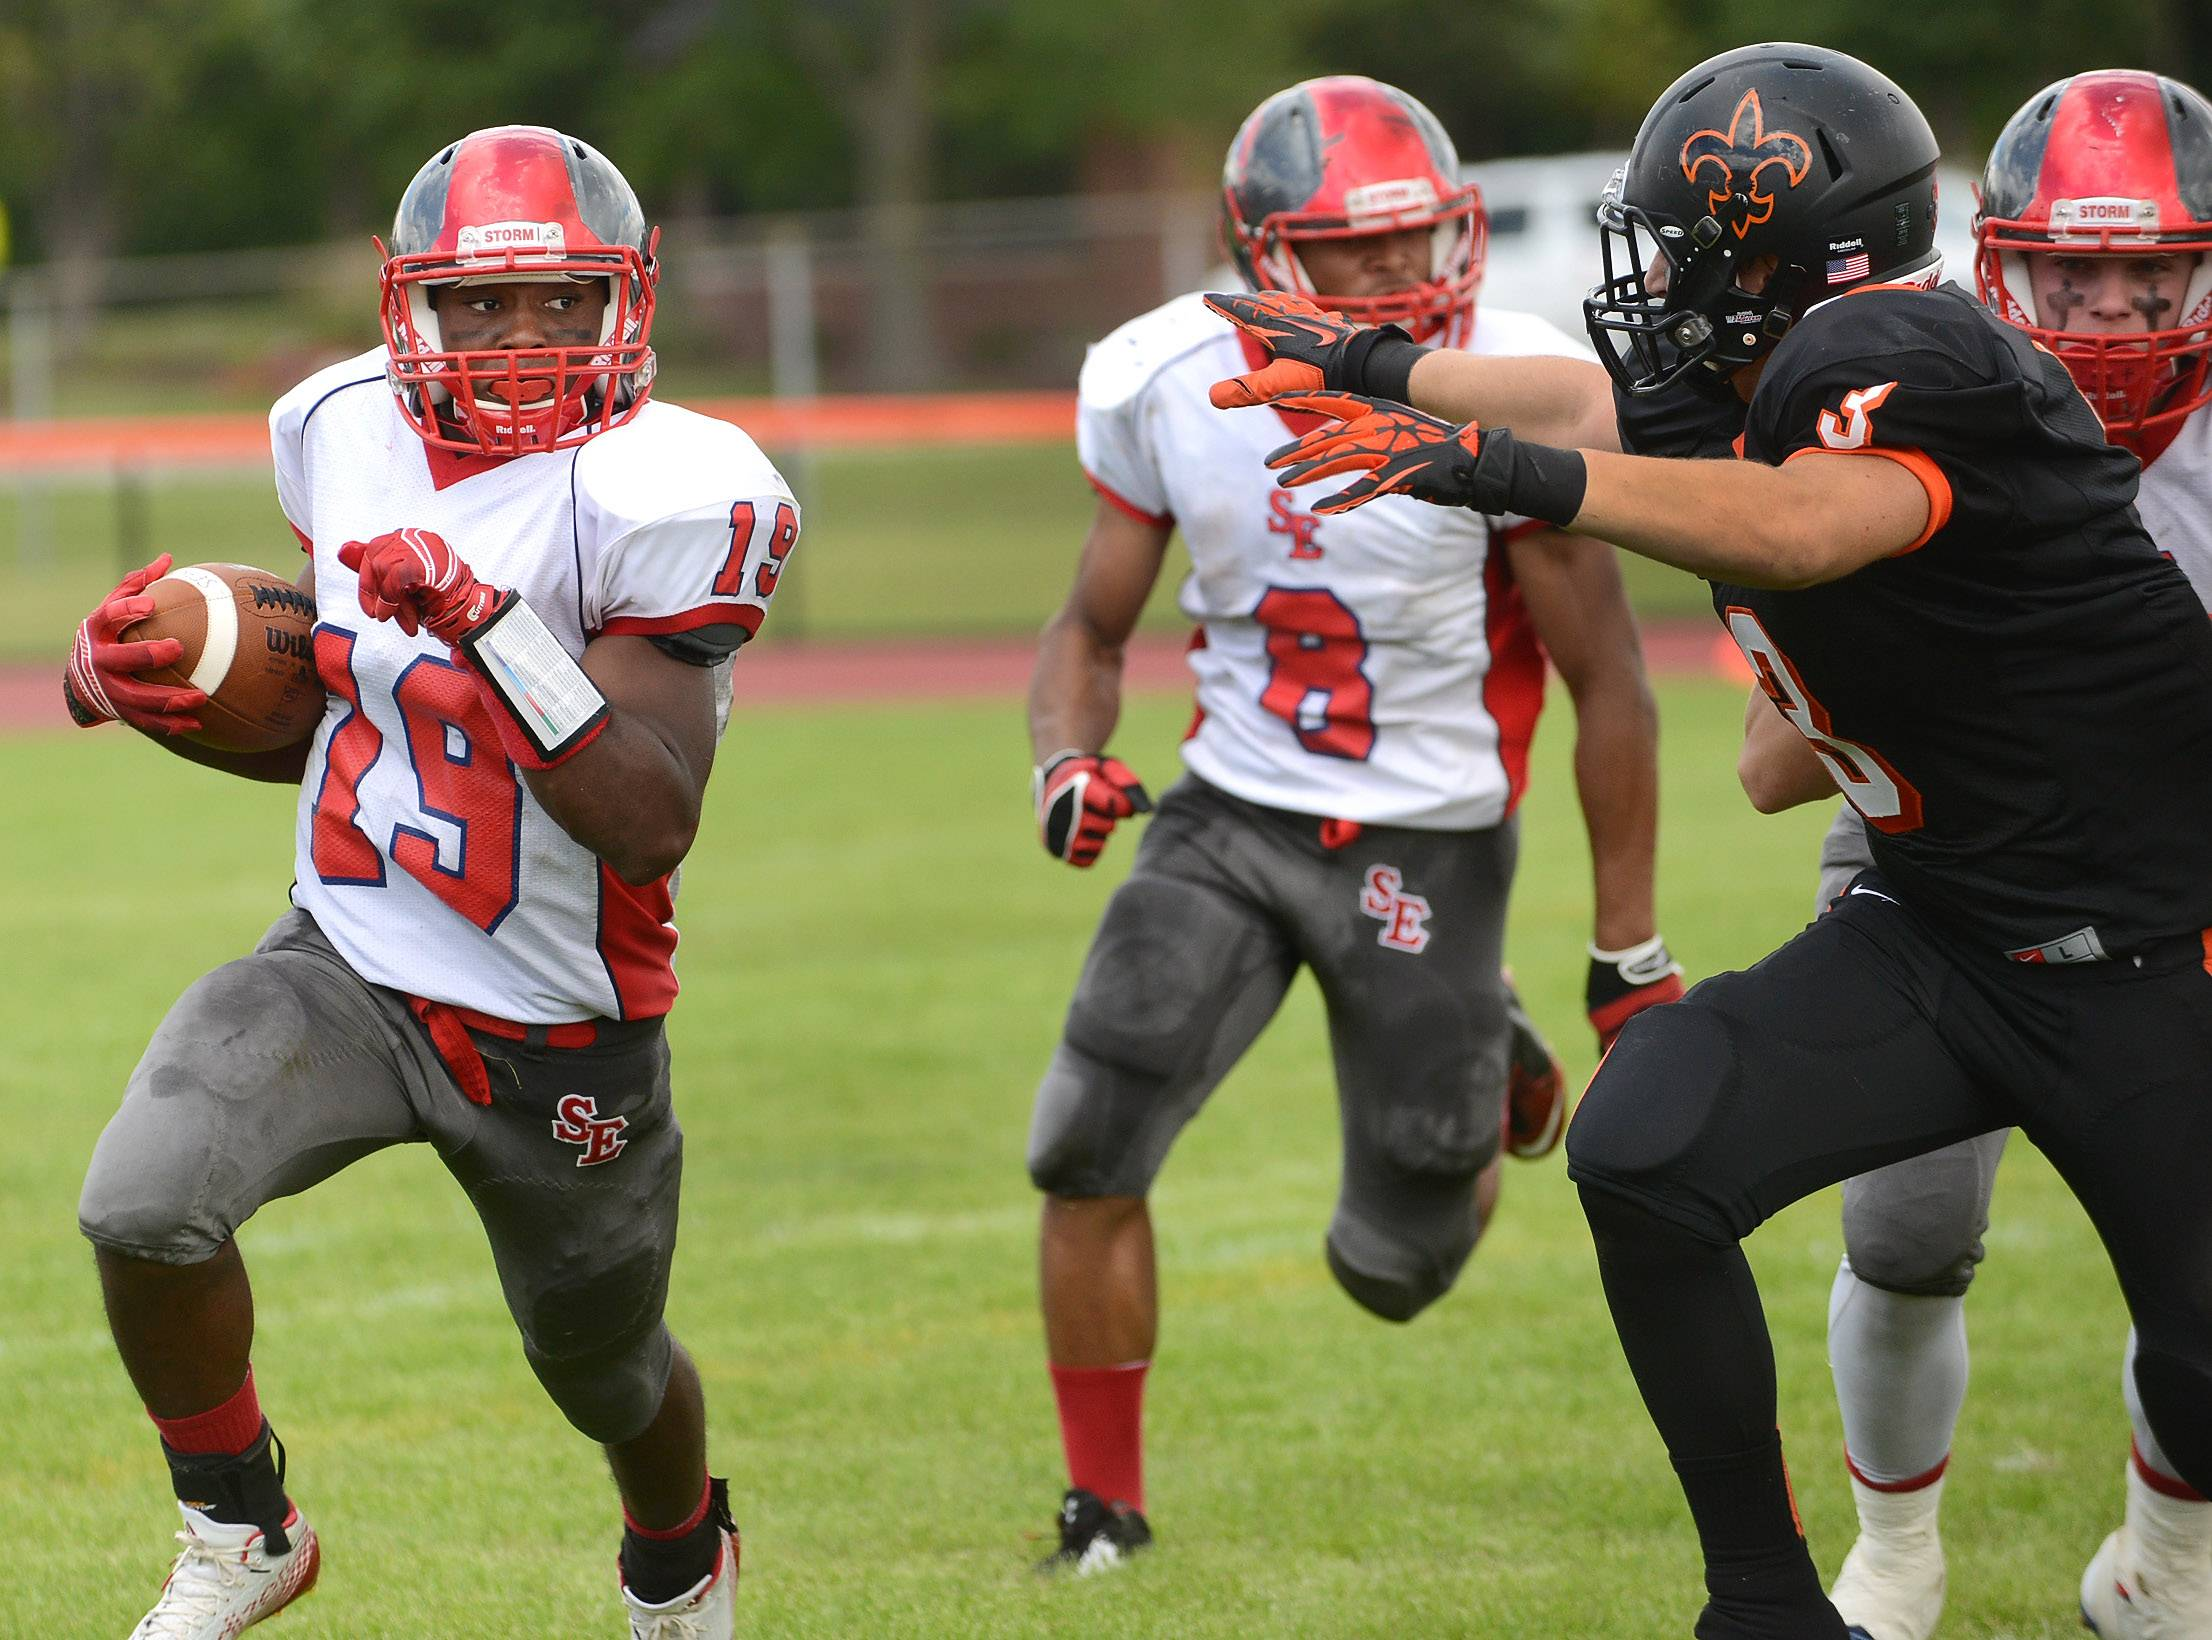 Shawn Griffin of South Elgin runs wide during South Elgin at St. Charles East football.